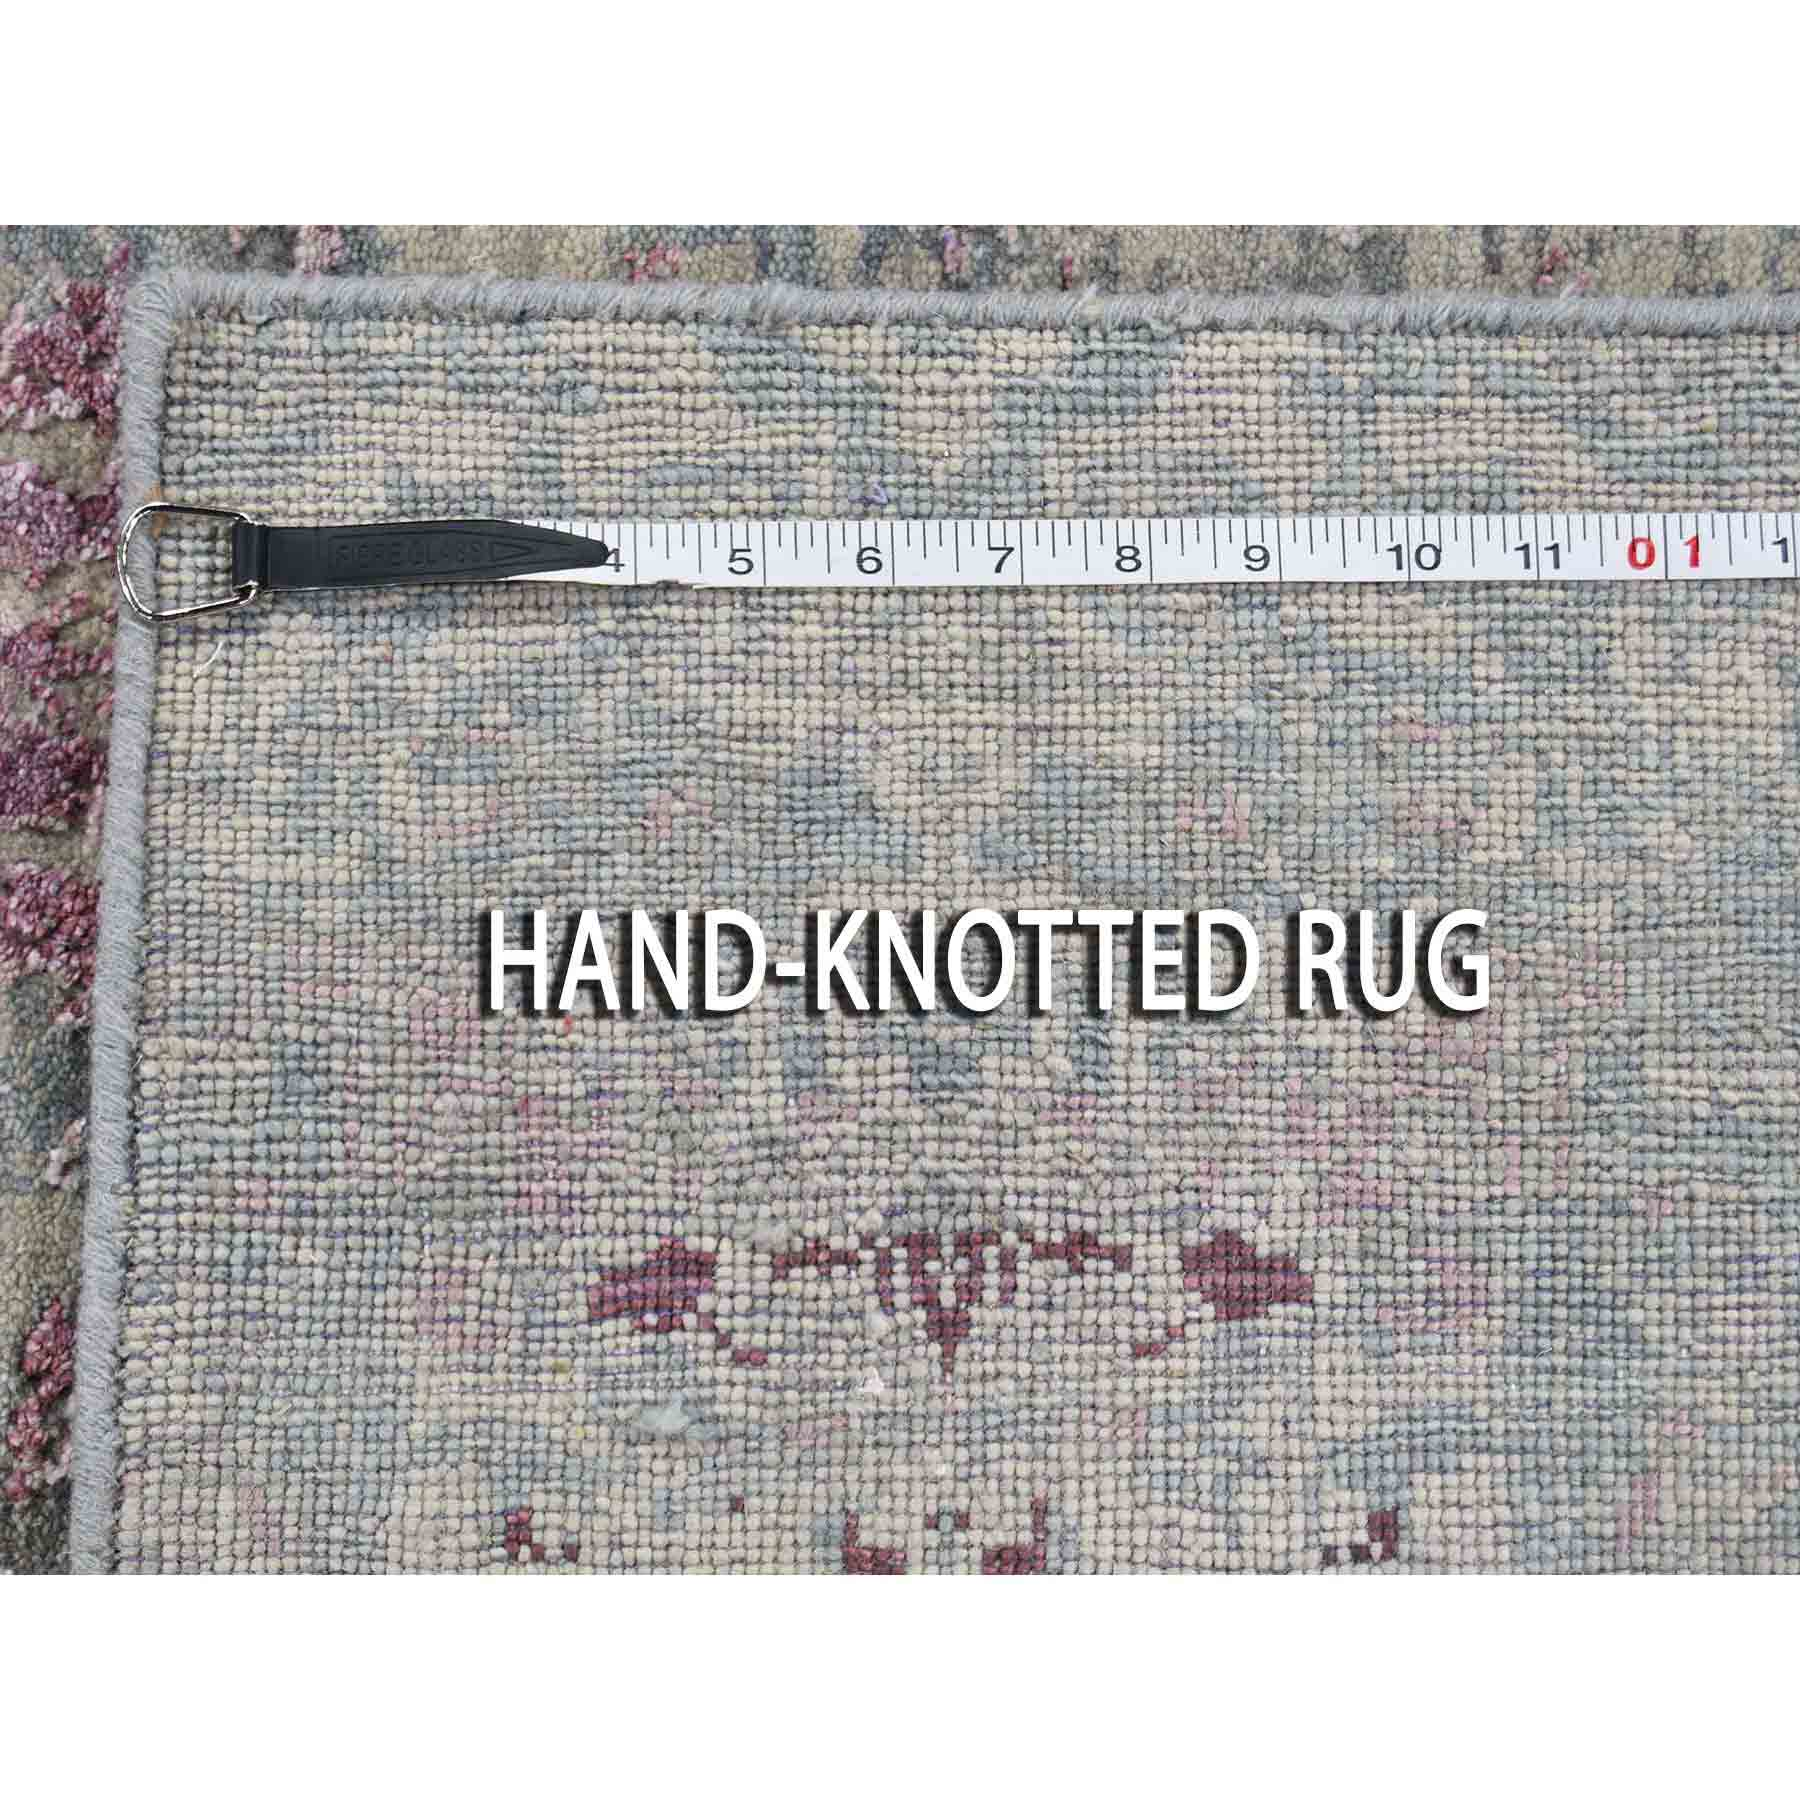 Transitional-Hand-Knotted-Rug-233195